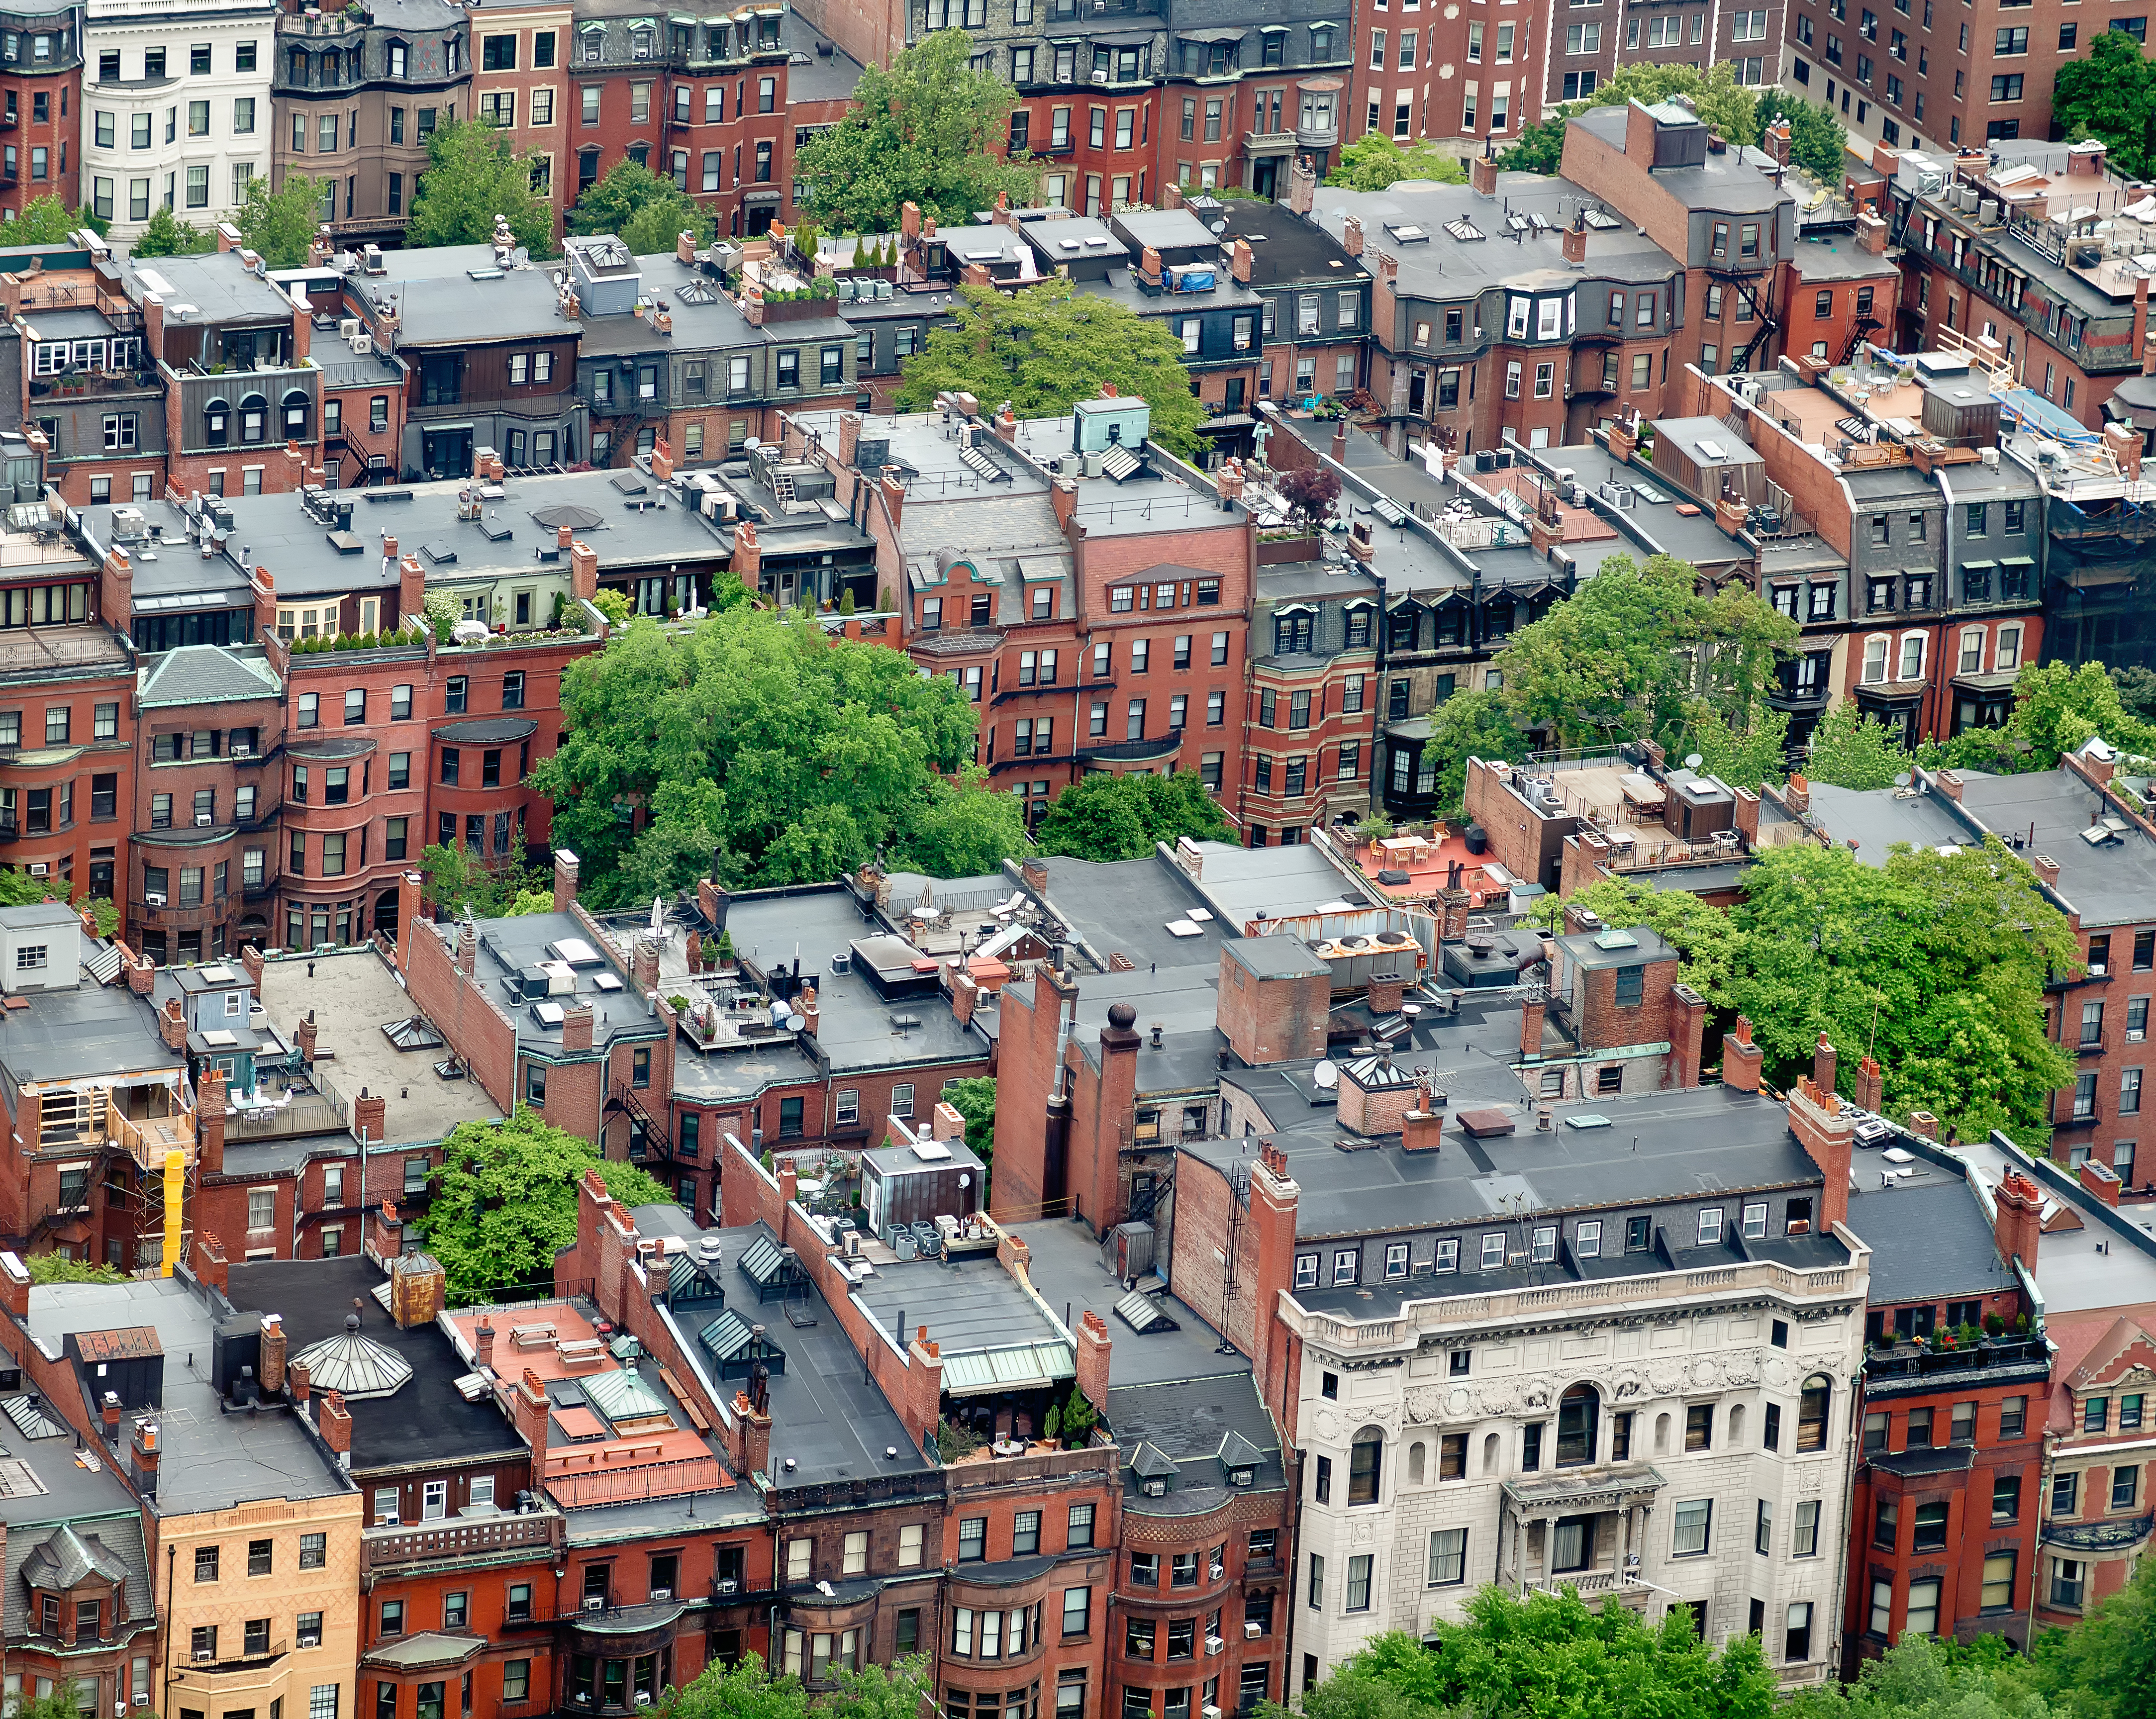 Aerial view of rows of small apartment buildings in a city.